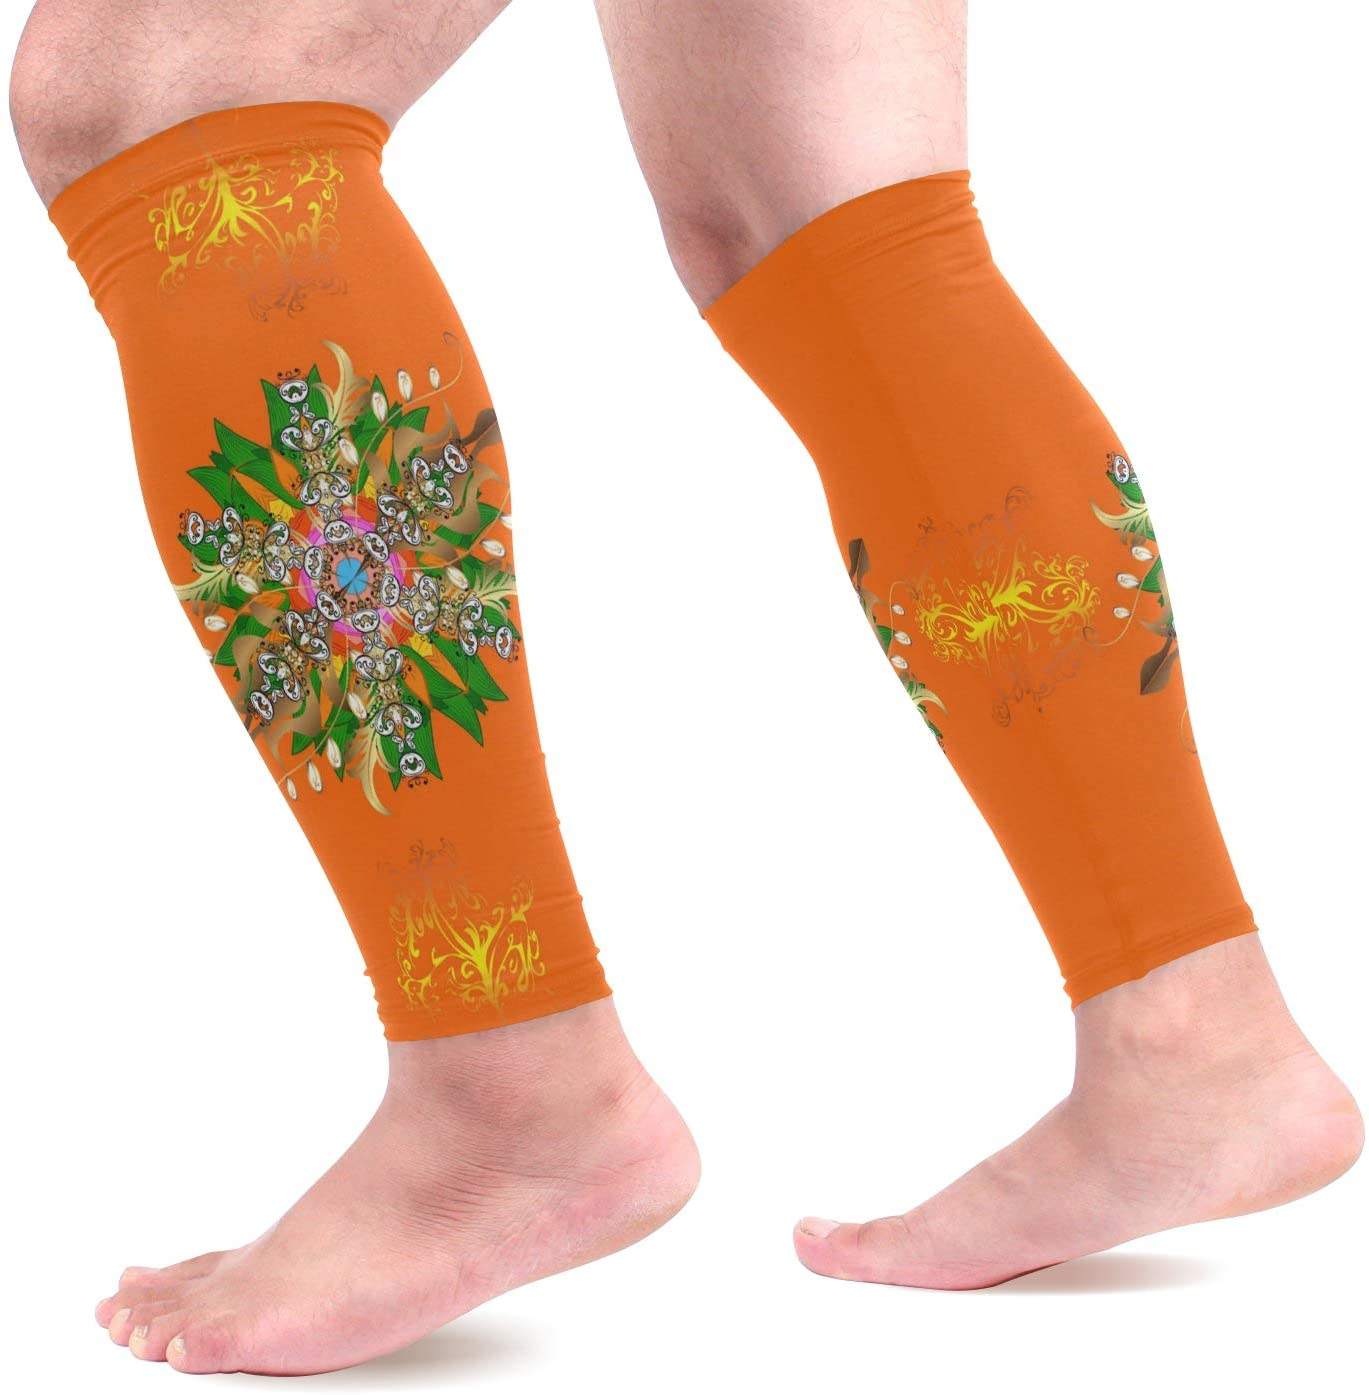 Calf Compression Sleeves Women Yellow and Orange Colors Footless Calf Compression Socks for Running, Shin Splint, Calf Pain Relief, Leg Support Sleeve for Running, Air Travel, Nurses, Cycling Men